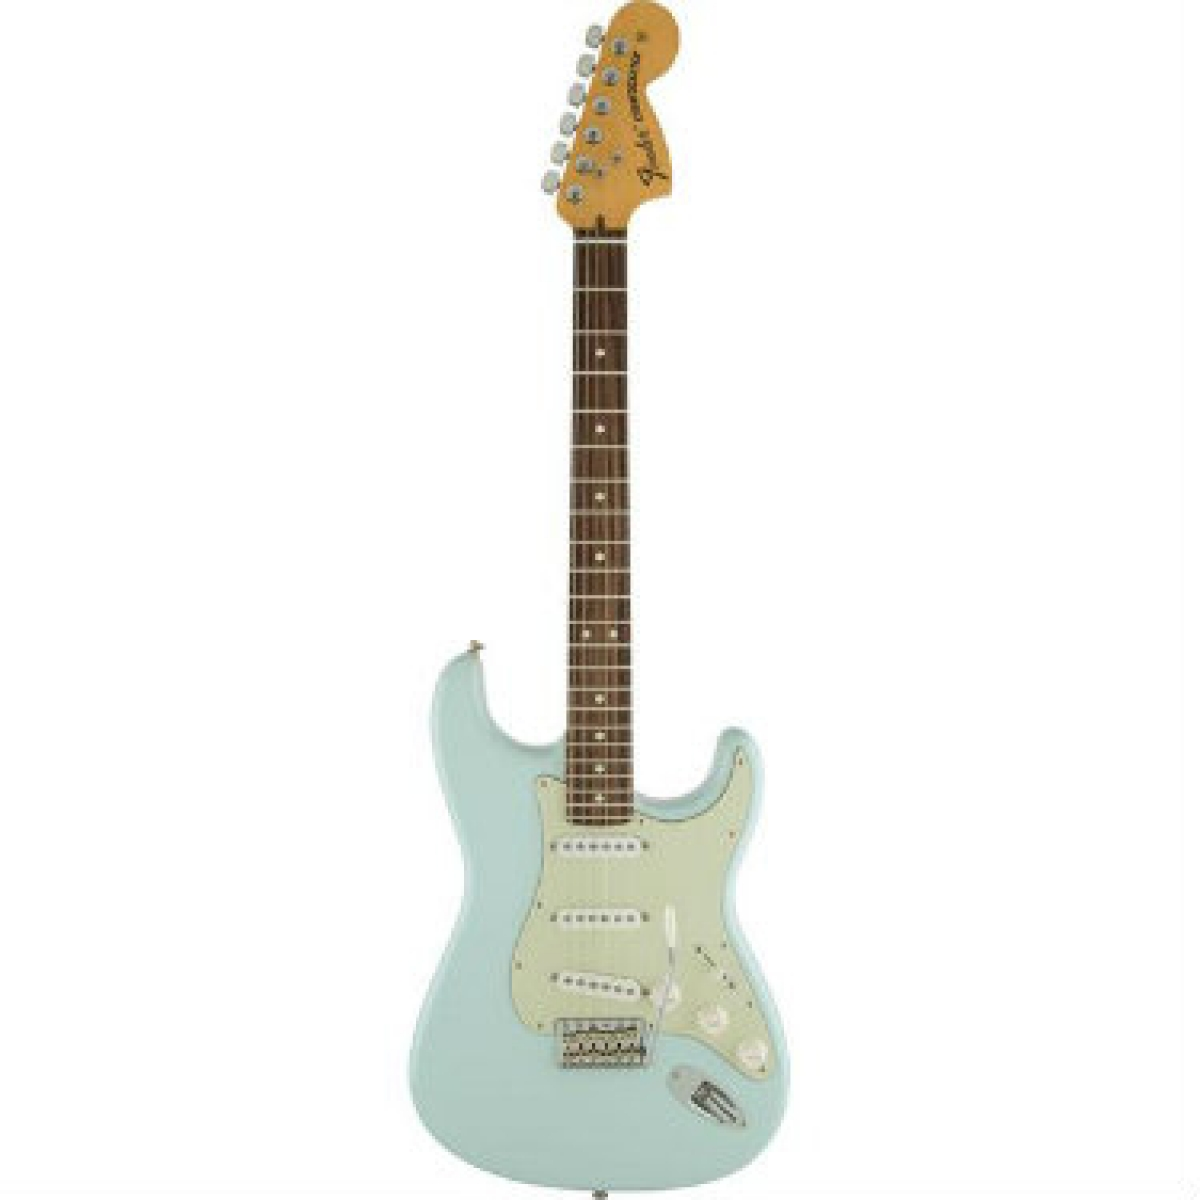 Fender American Special Strat Blue Telecaster Sale On Texas Pickups Wiring Stratocaster In Sonic Secondhand